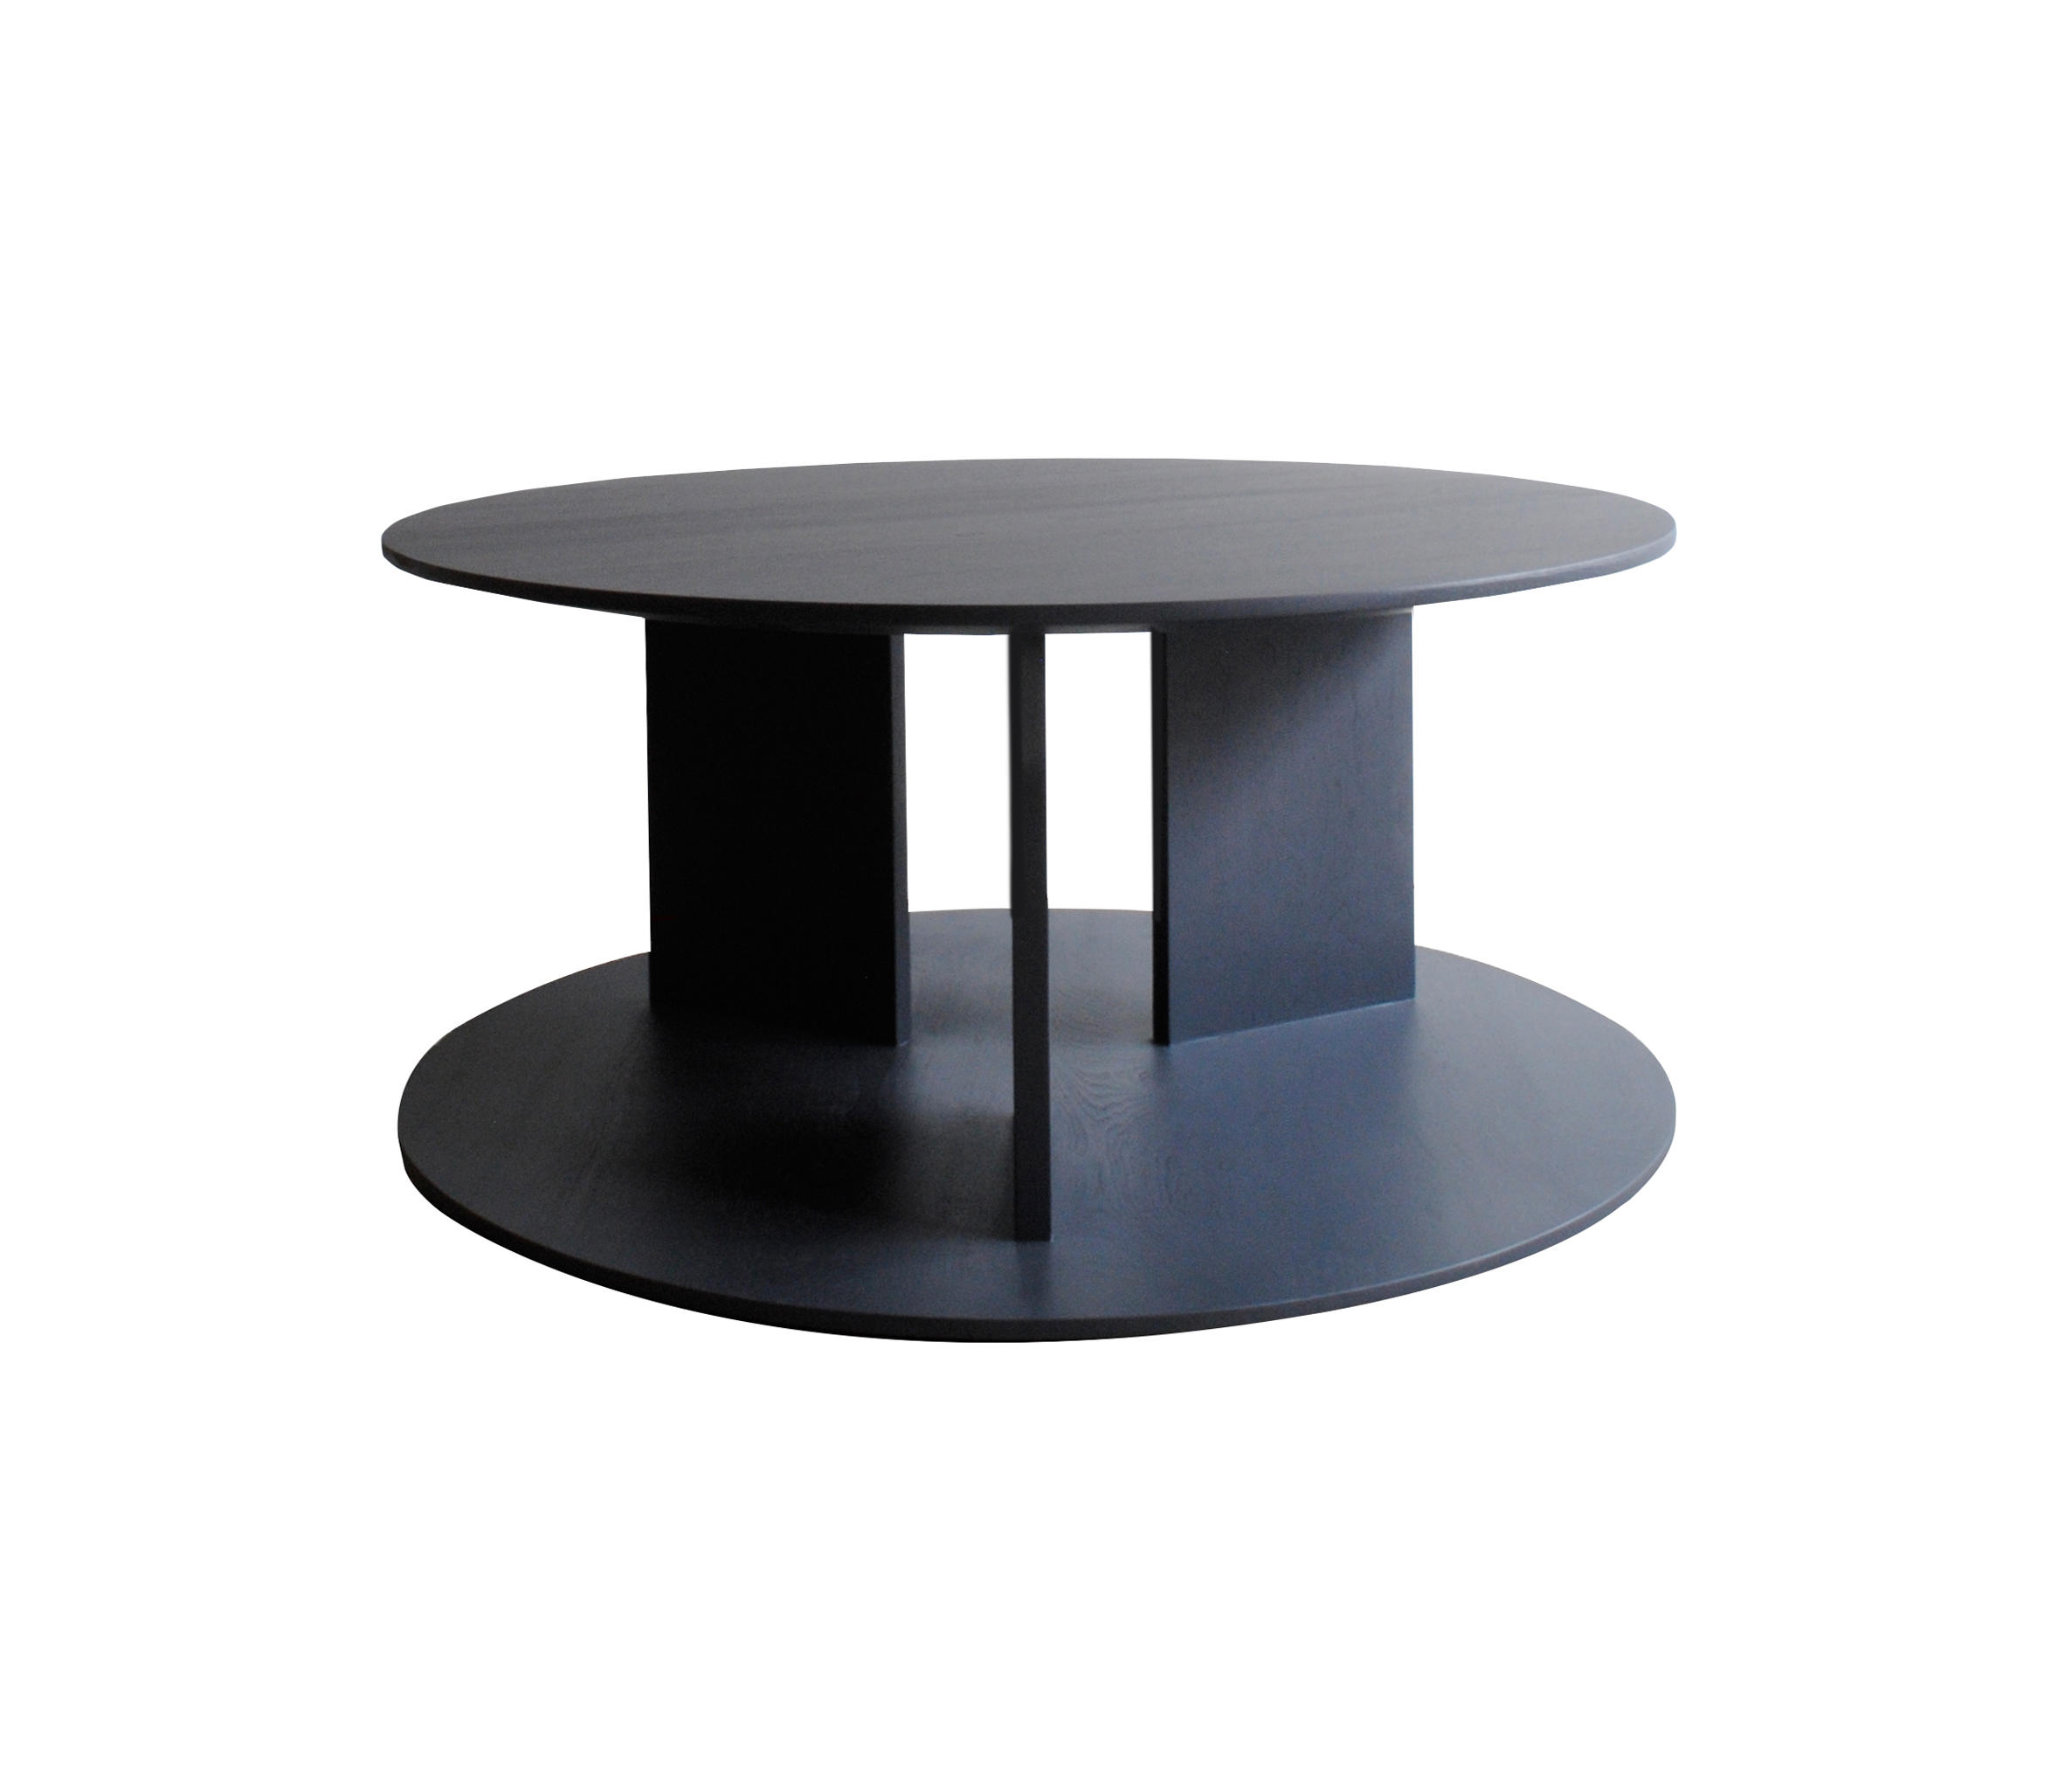 AXIS LOW TABLE - Lounge Tables From Studio Brovhn